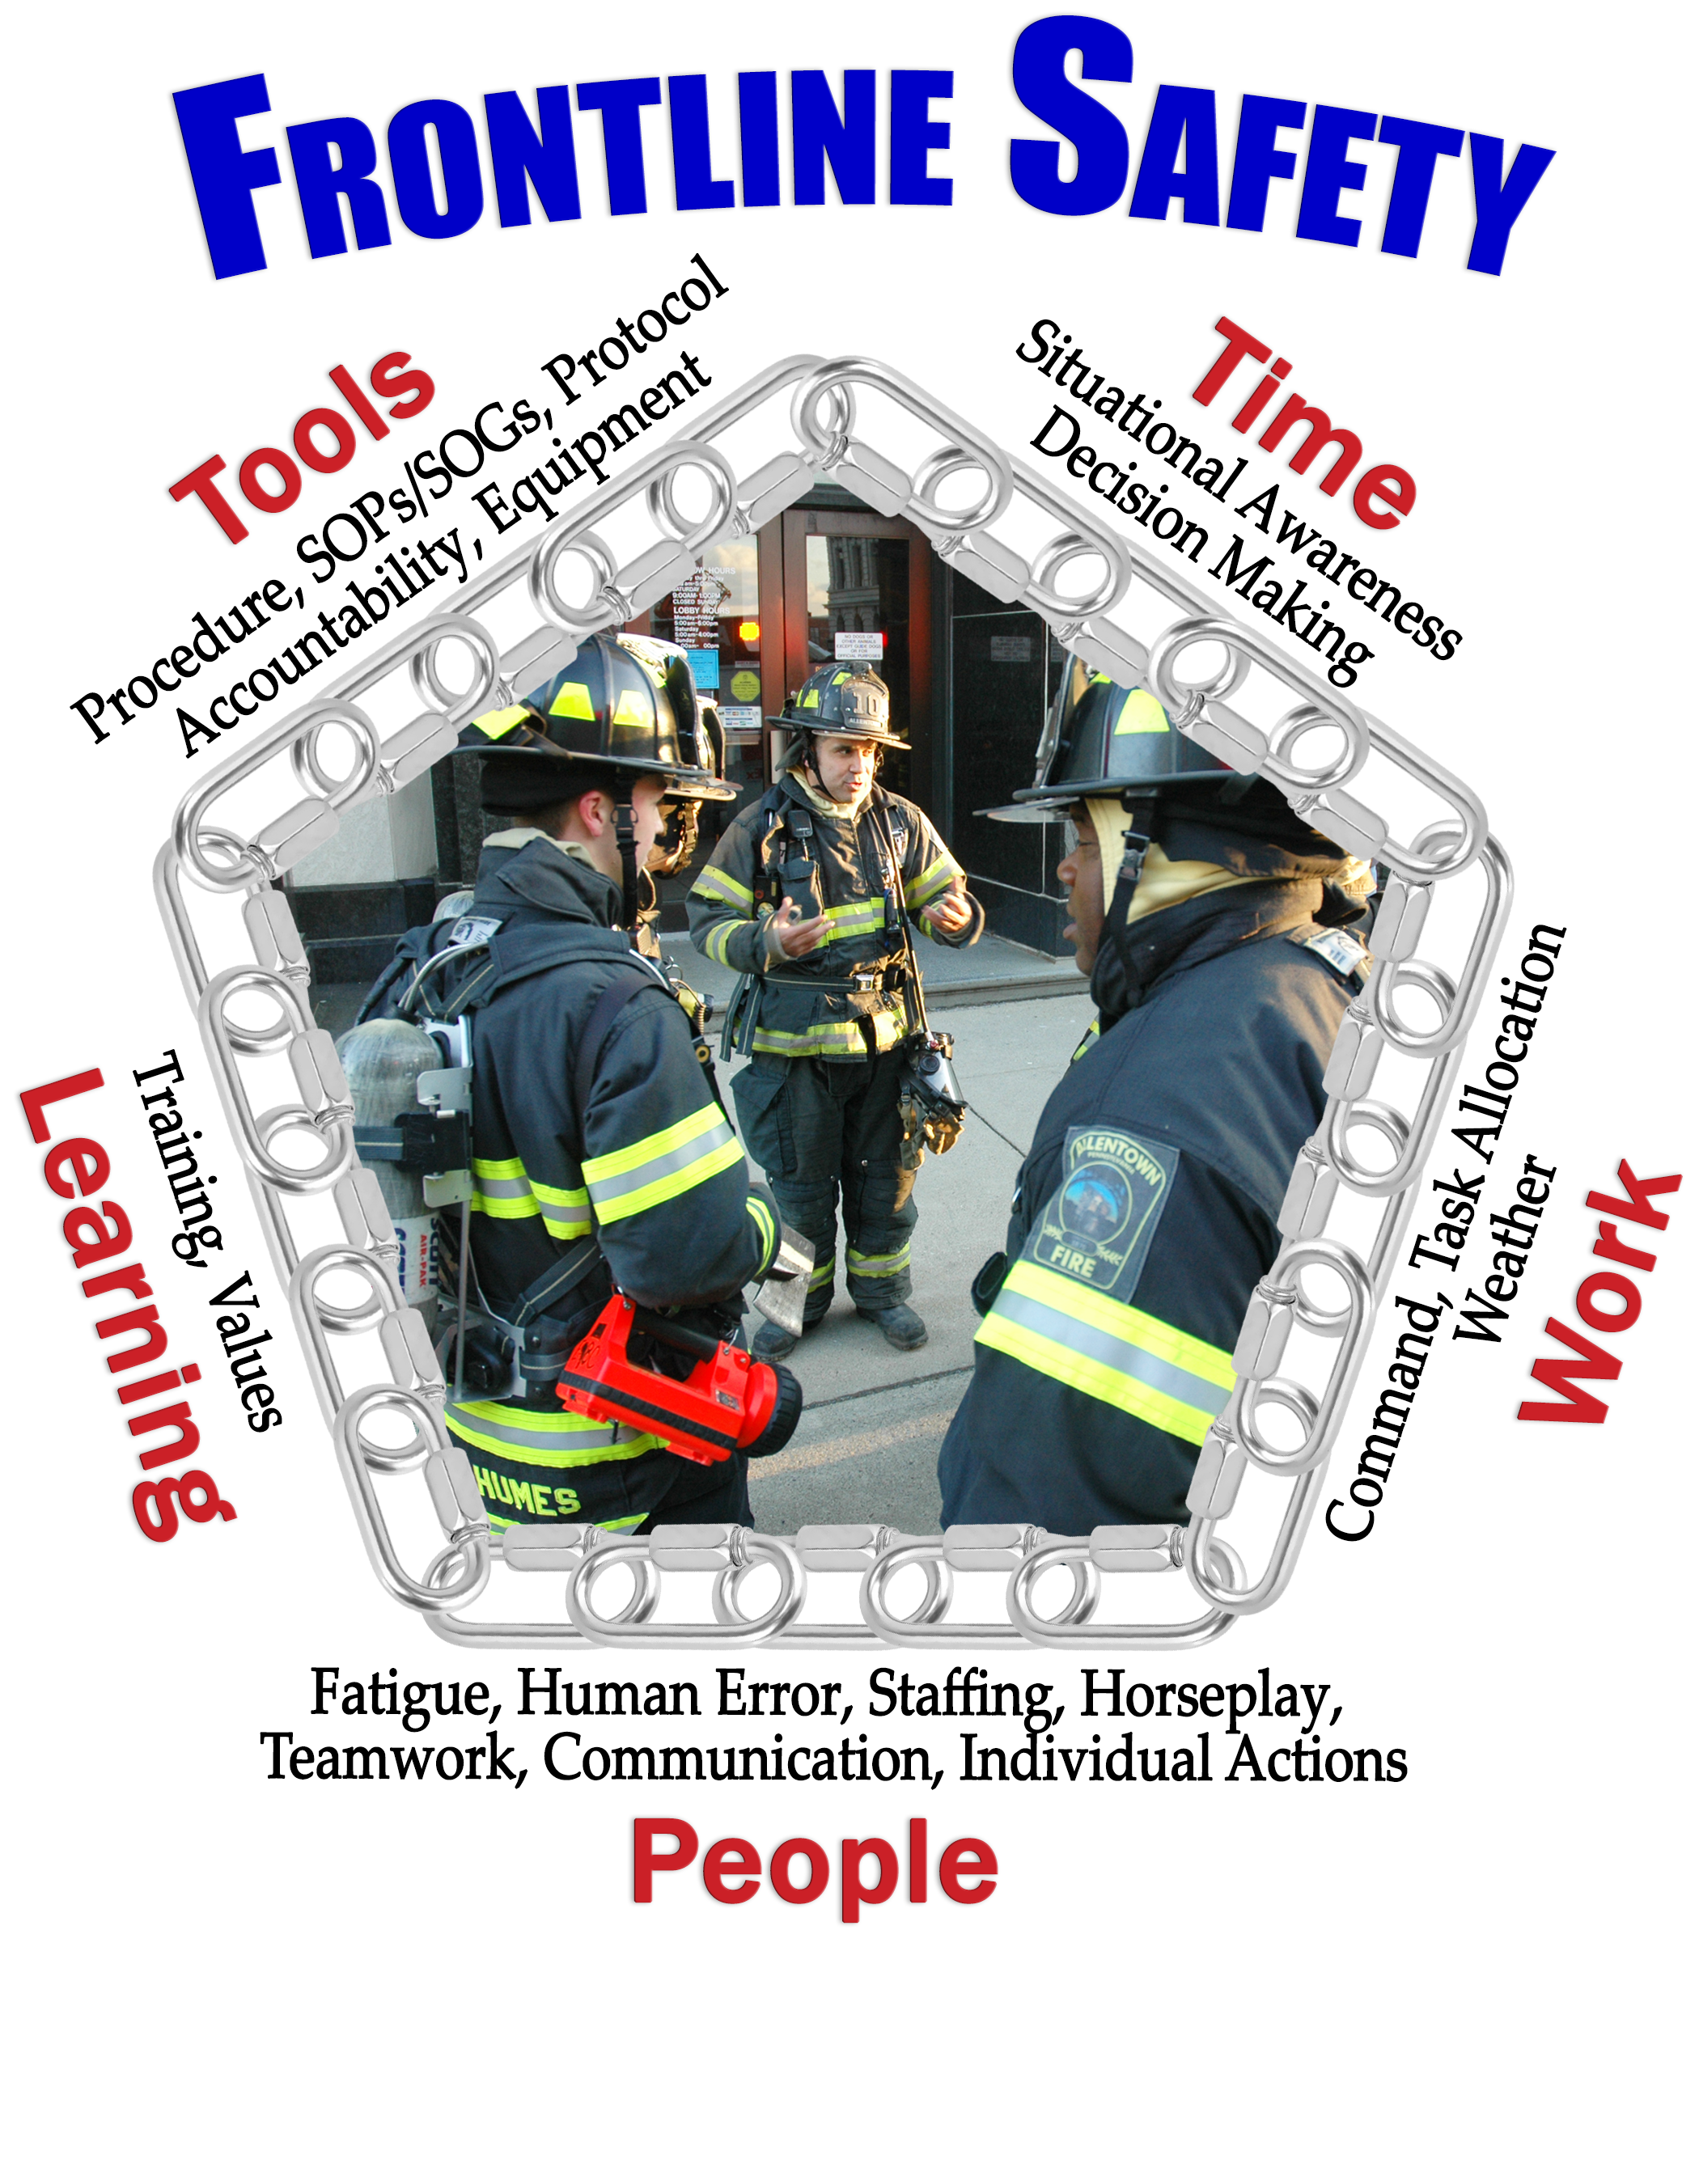 Frontline Safety: Tools, Time, Work, People, Learning